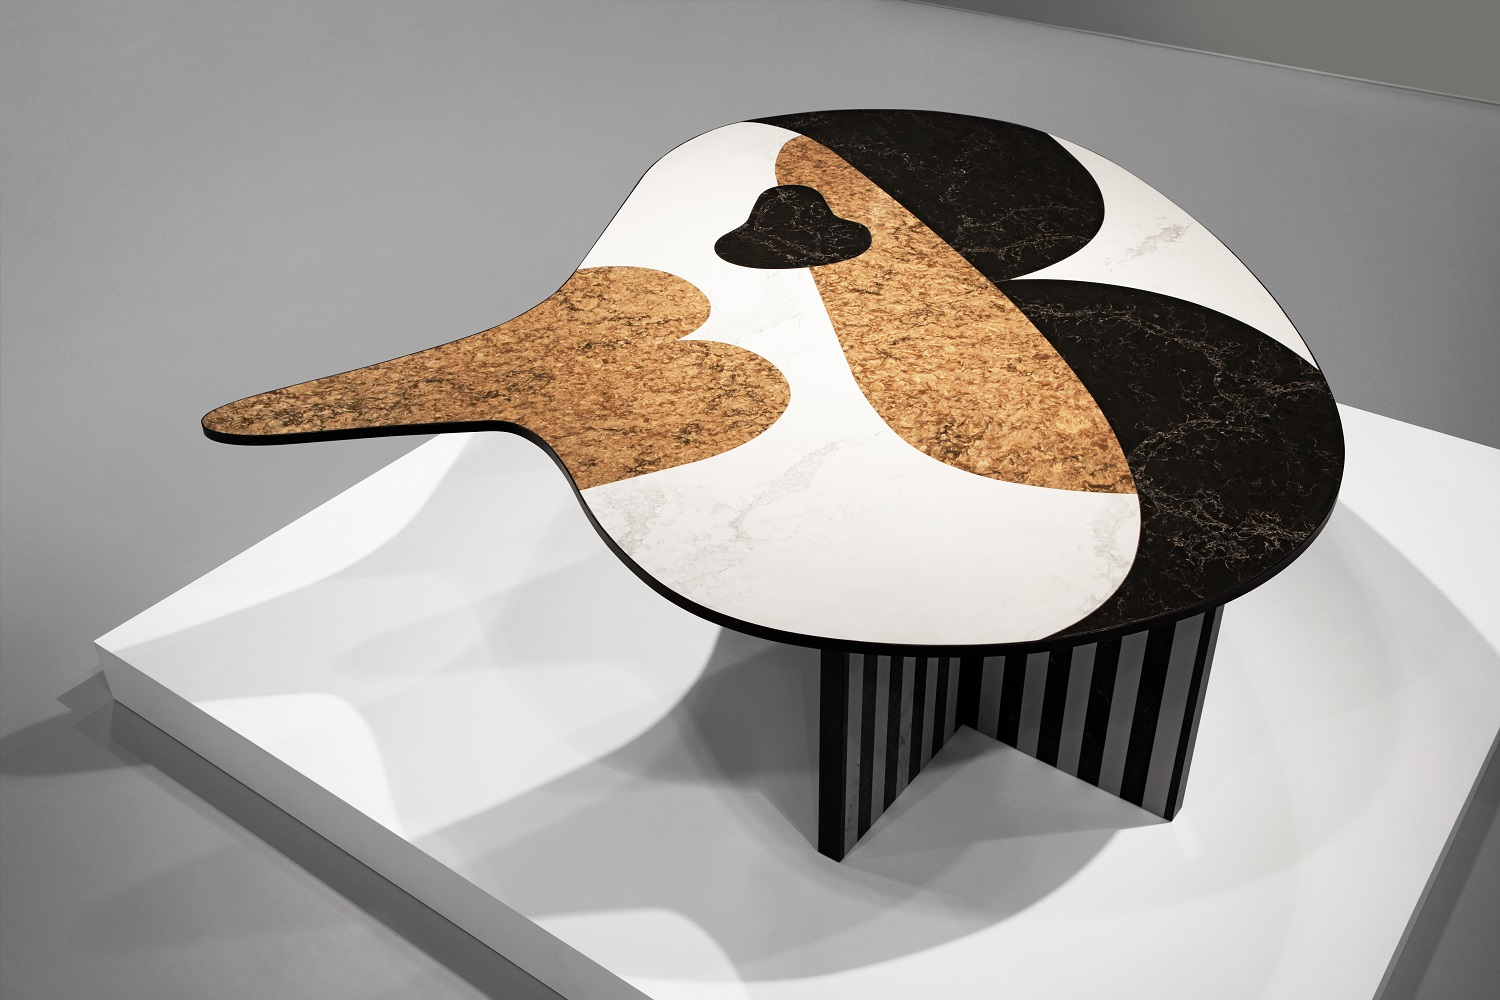 A table designed by Jaime Hayon, incorporating multiple Caesarstone surfaces.